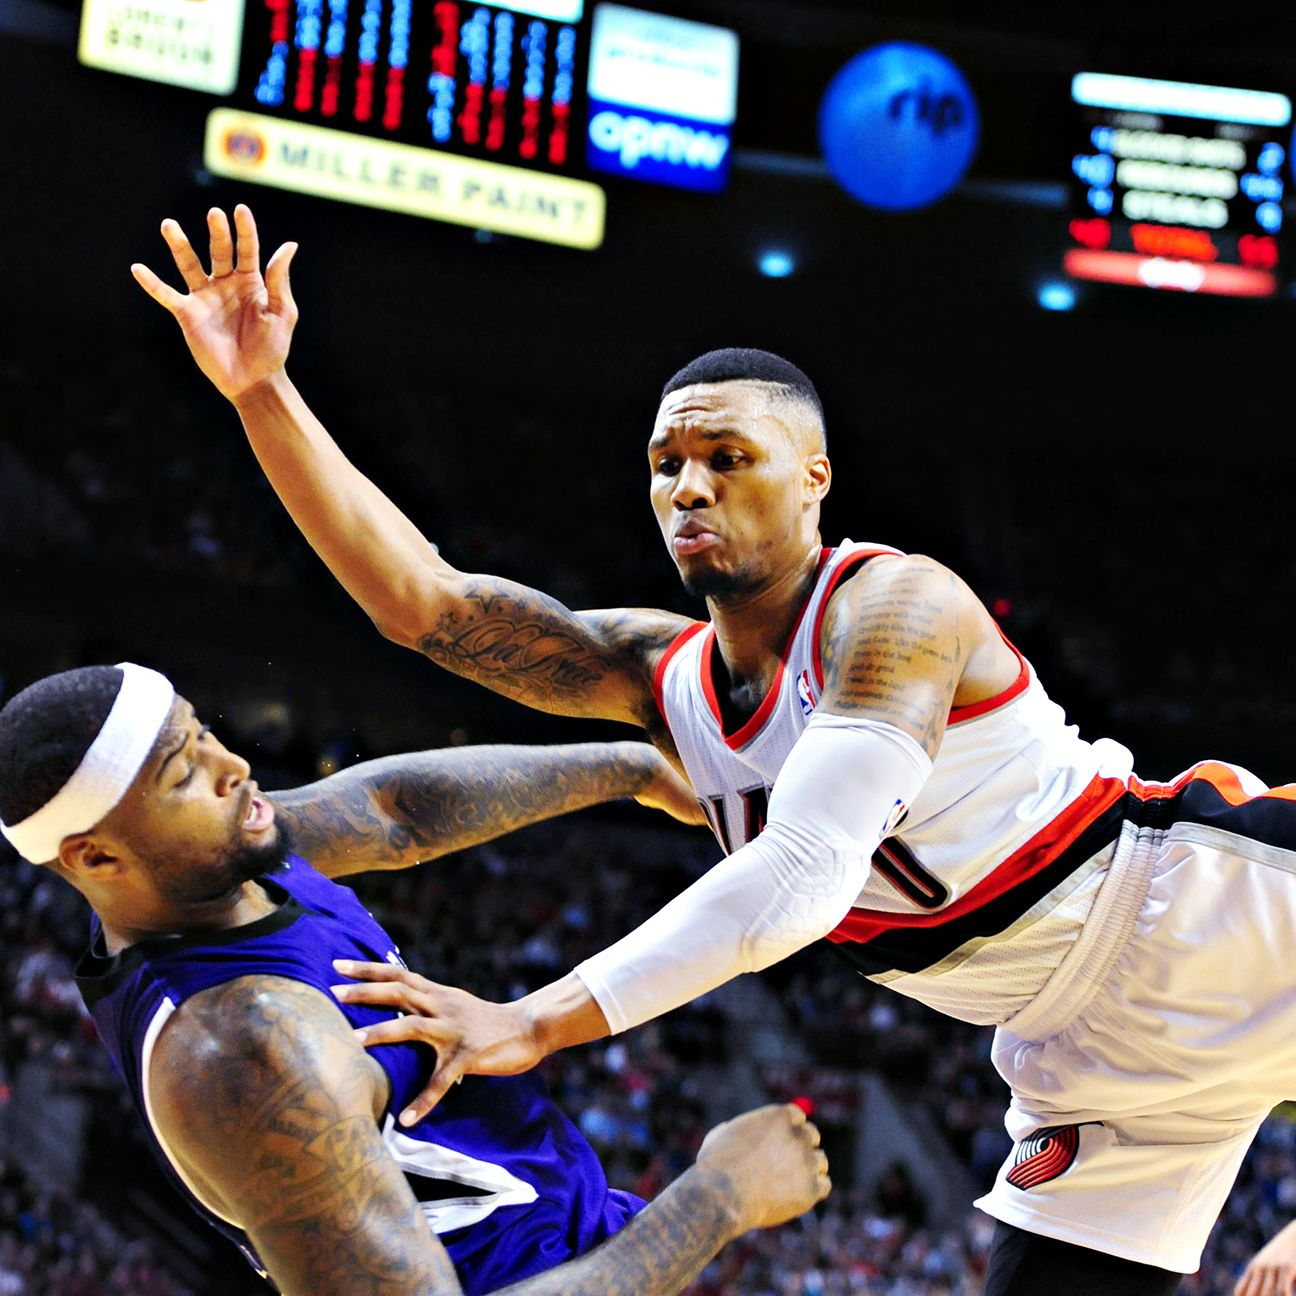 Damian Lillard Agrees To 5-year, $120 Million Extension